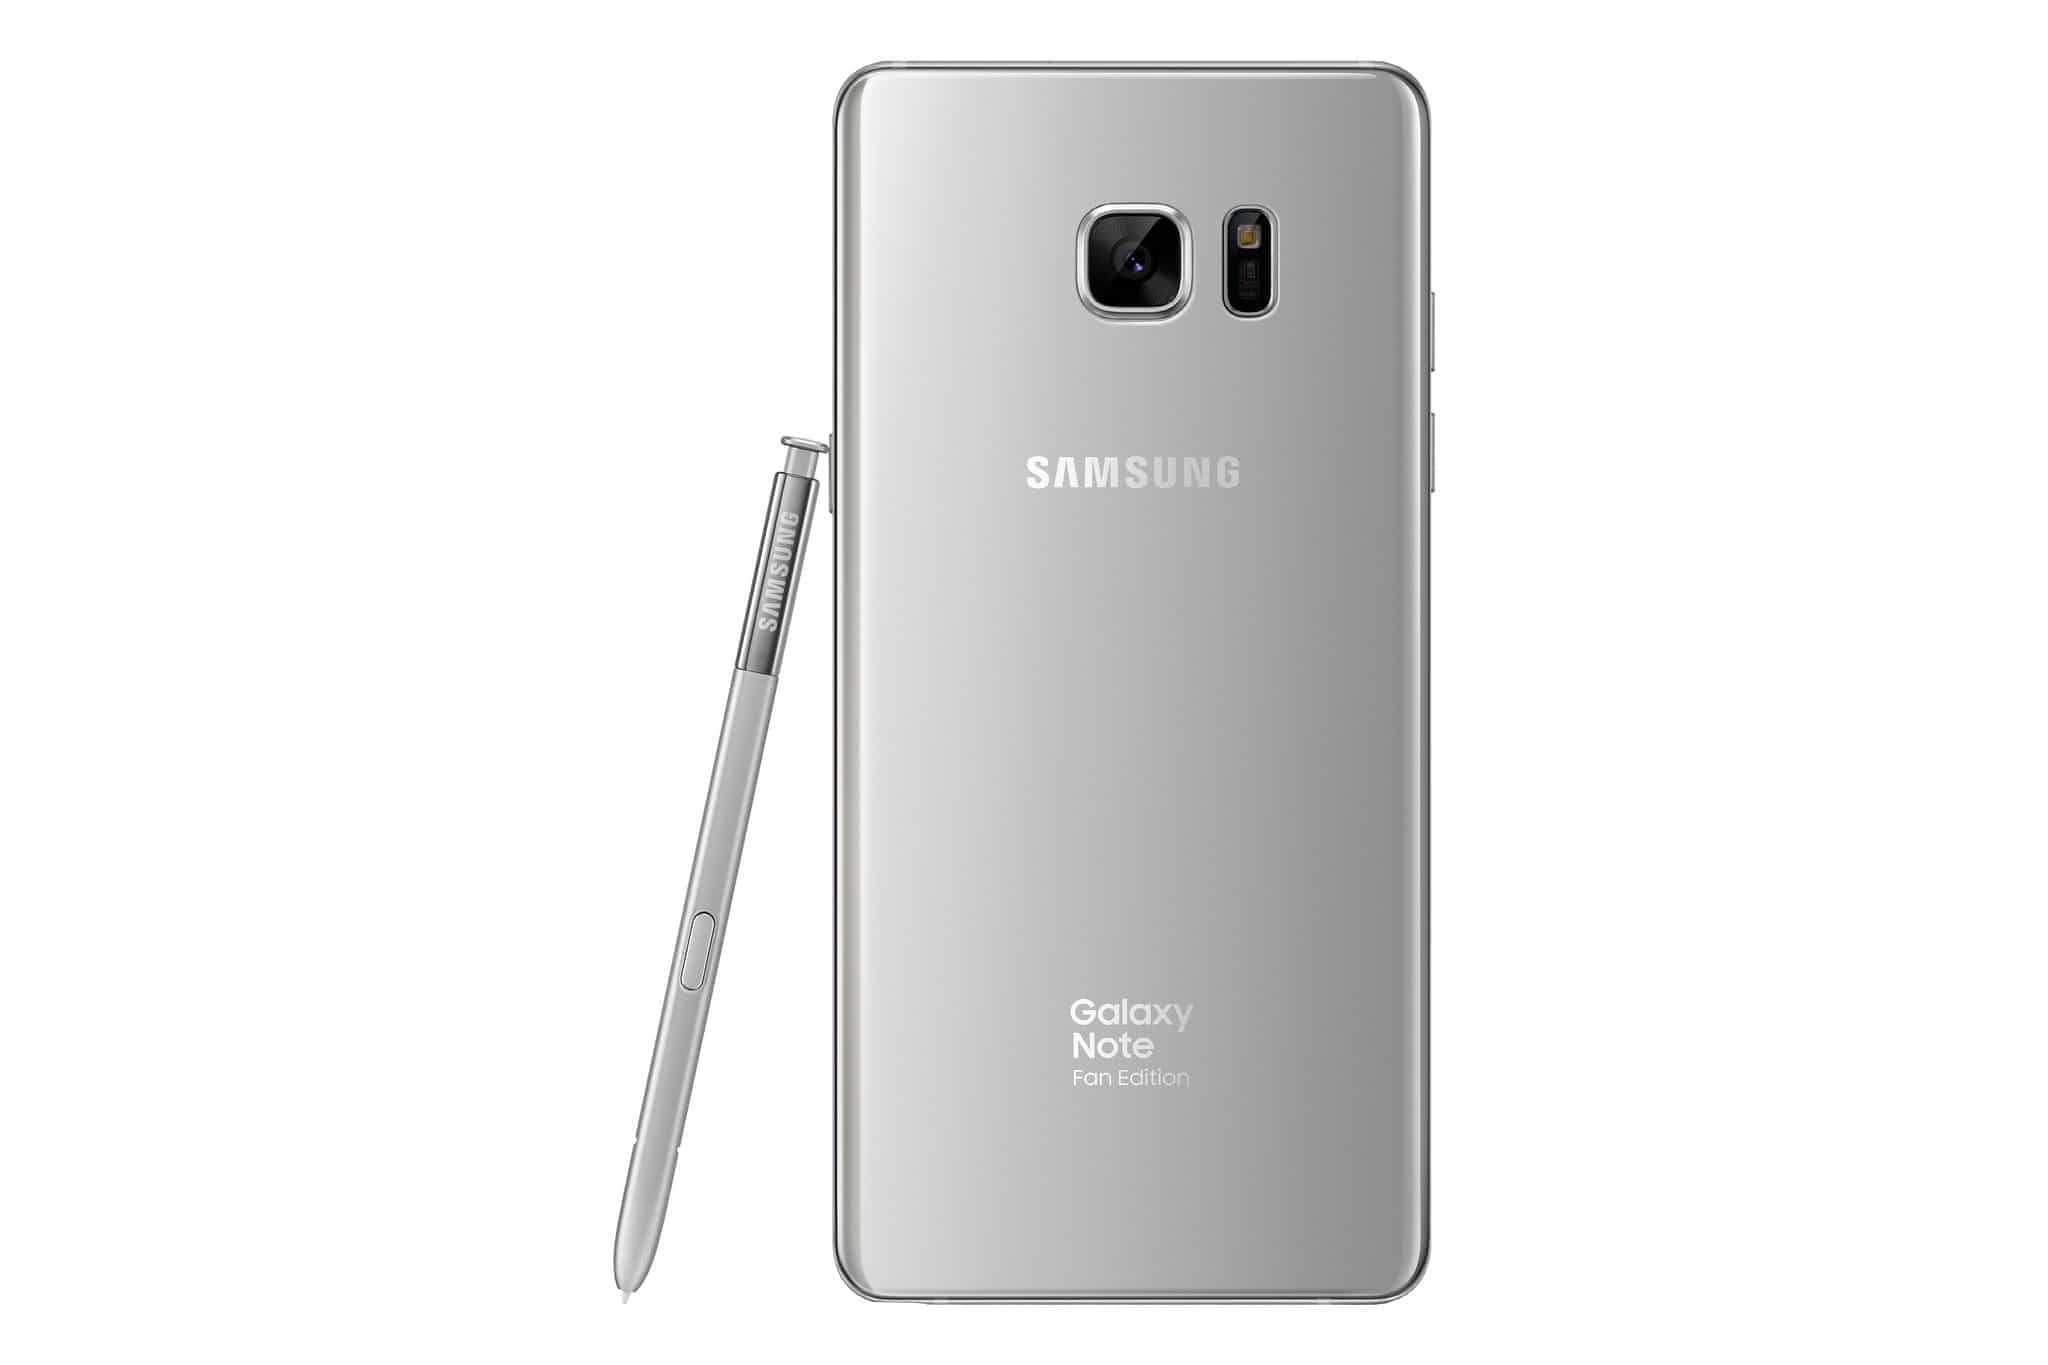 samsung galaxy note 7 (fe)